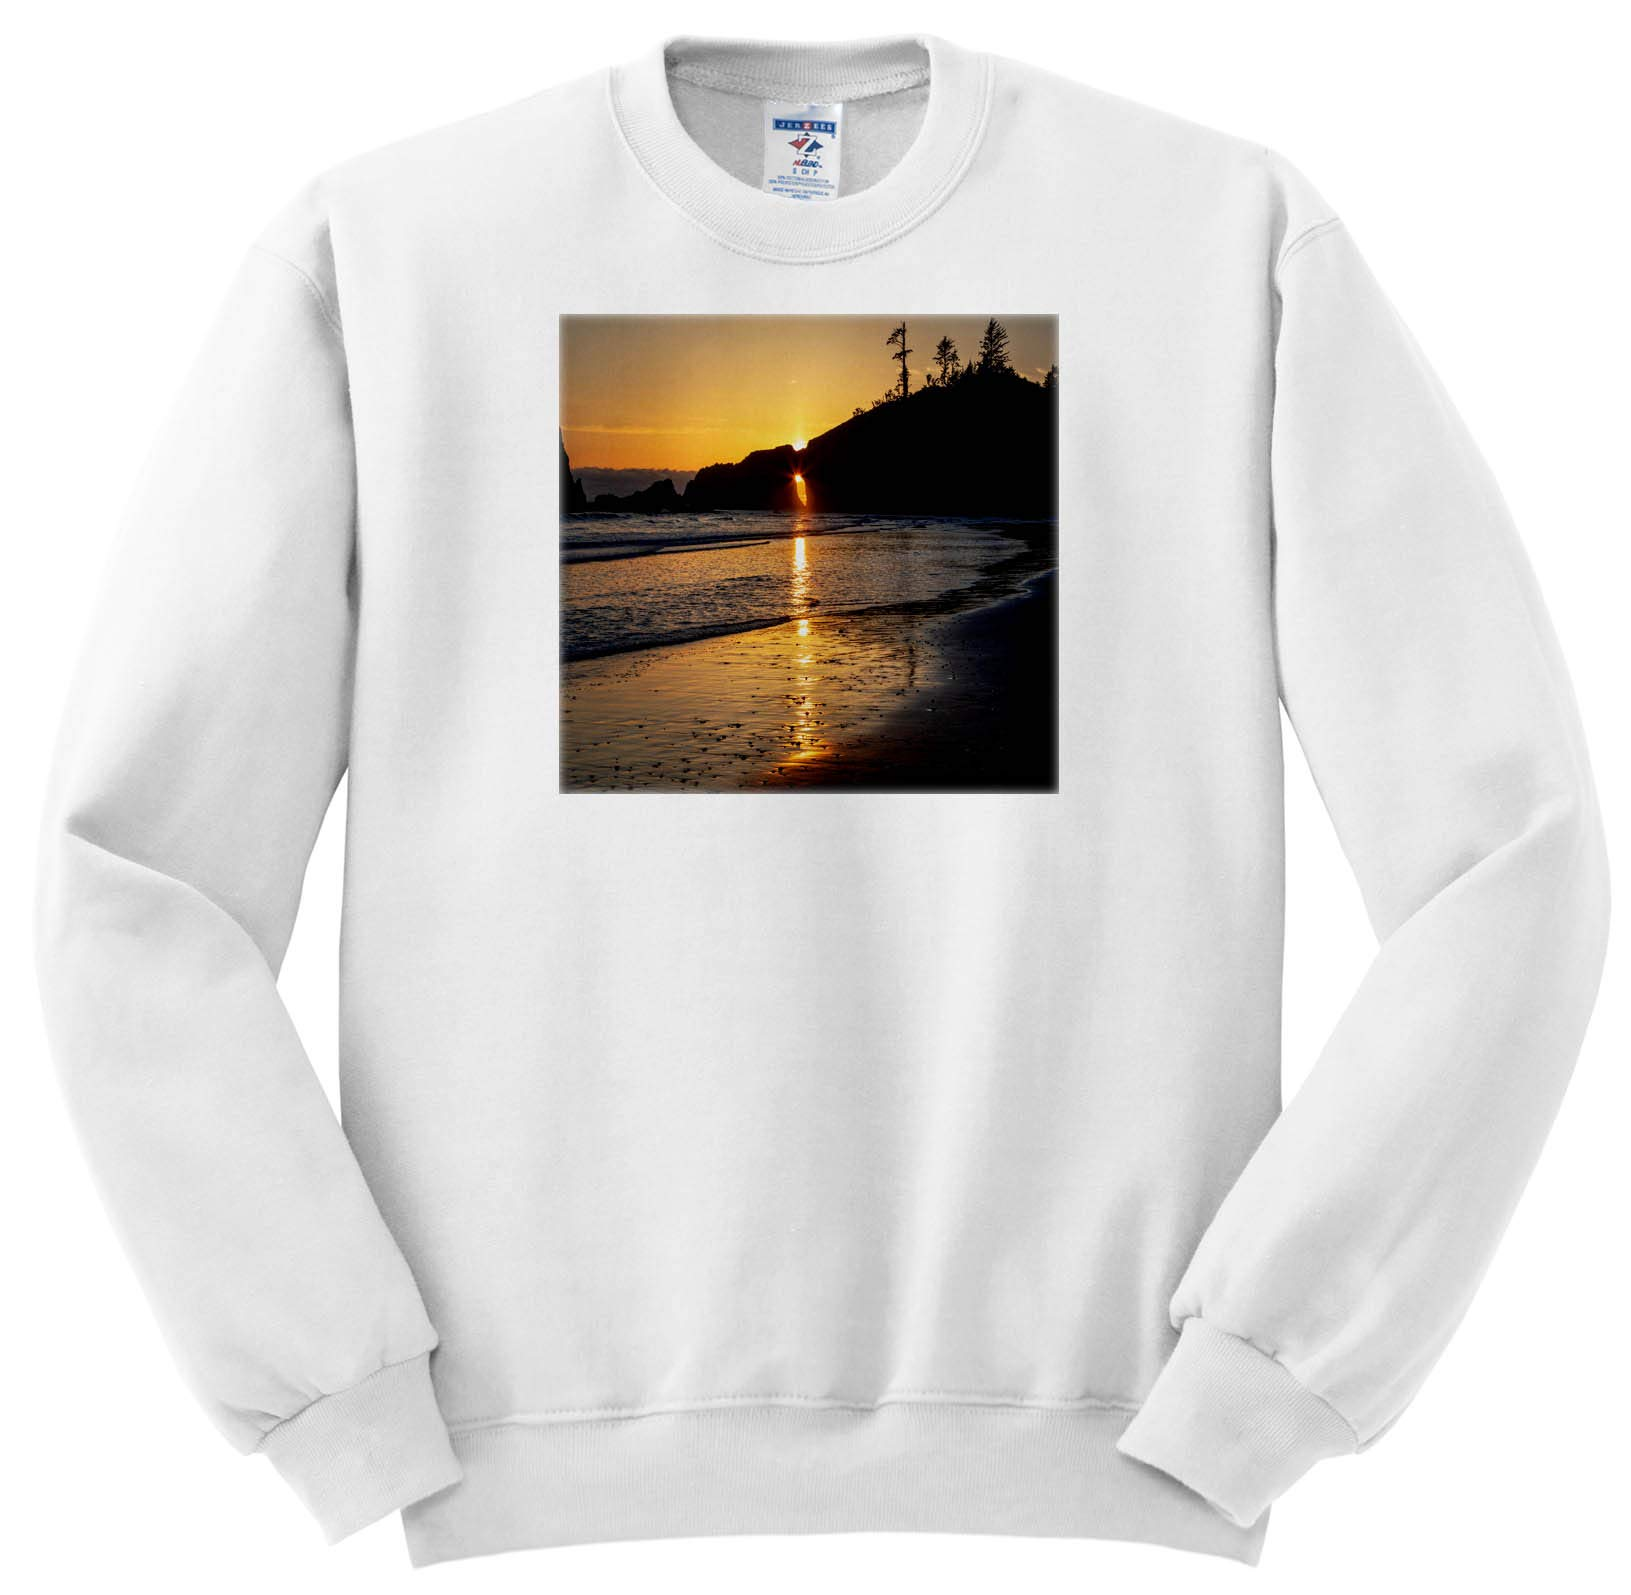 Mike Swindle Photography Landscapes Sun Star Through Arch In Sea Stack S Shirts